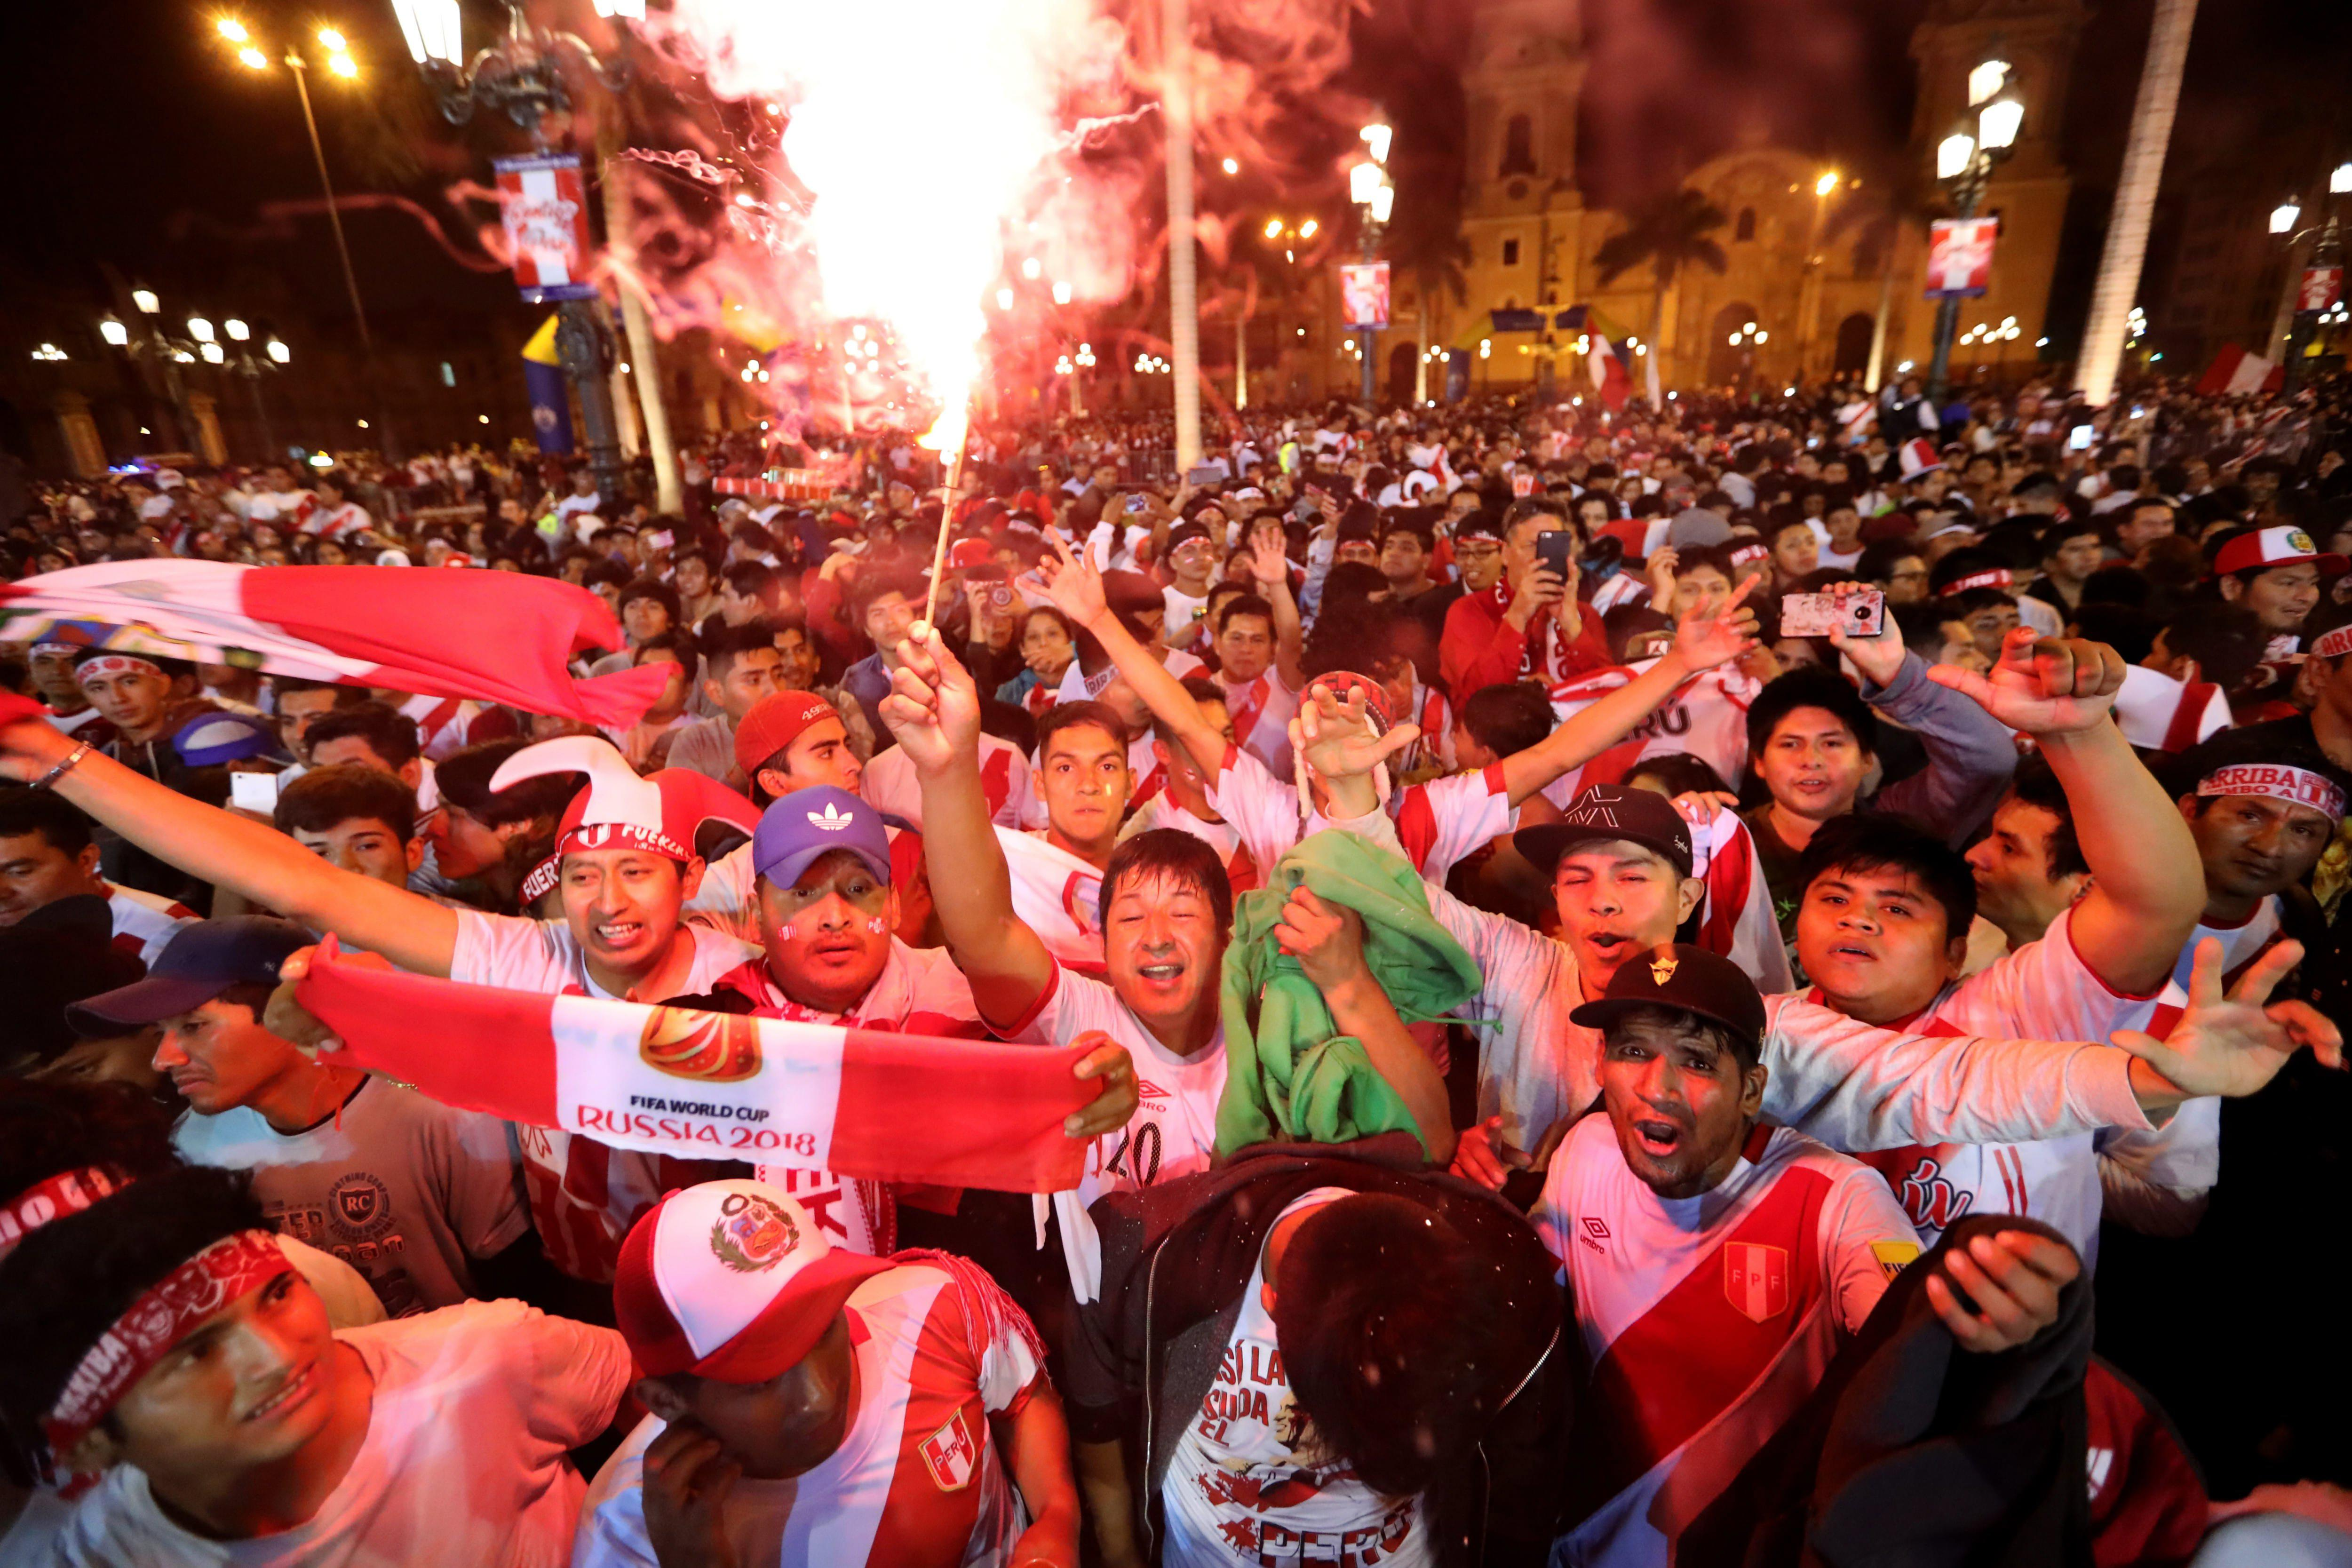 Peru fans partied hard after they secured passage to next summer's World Cup